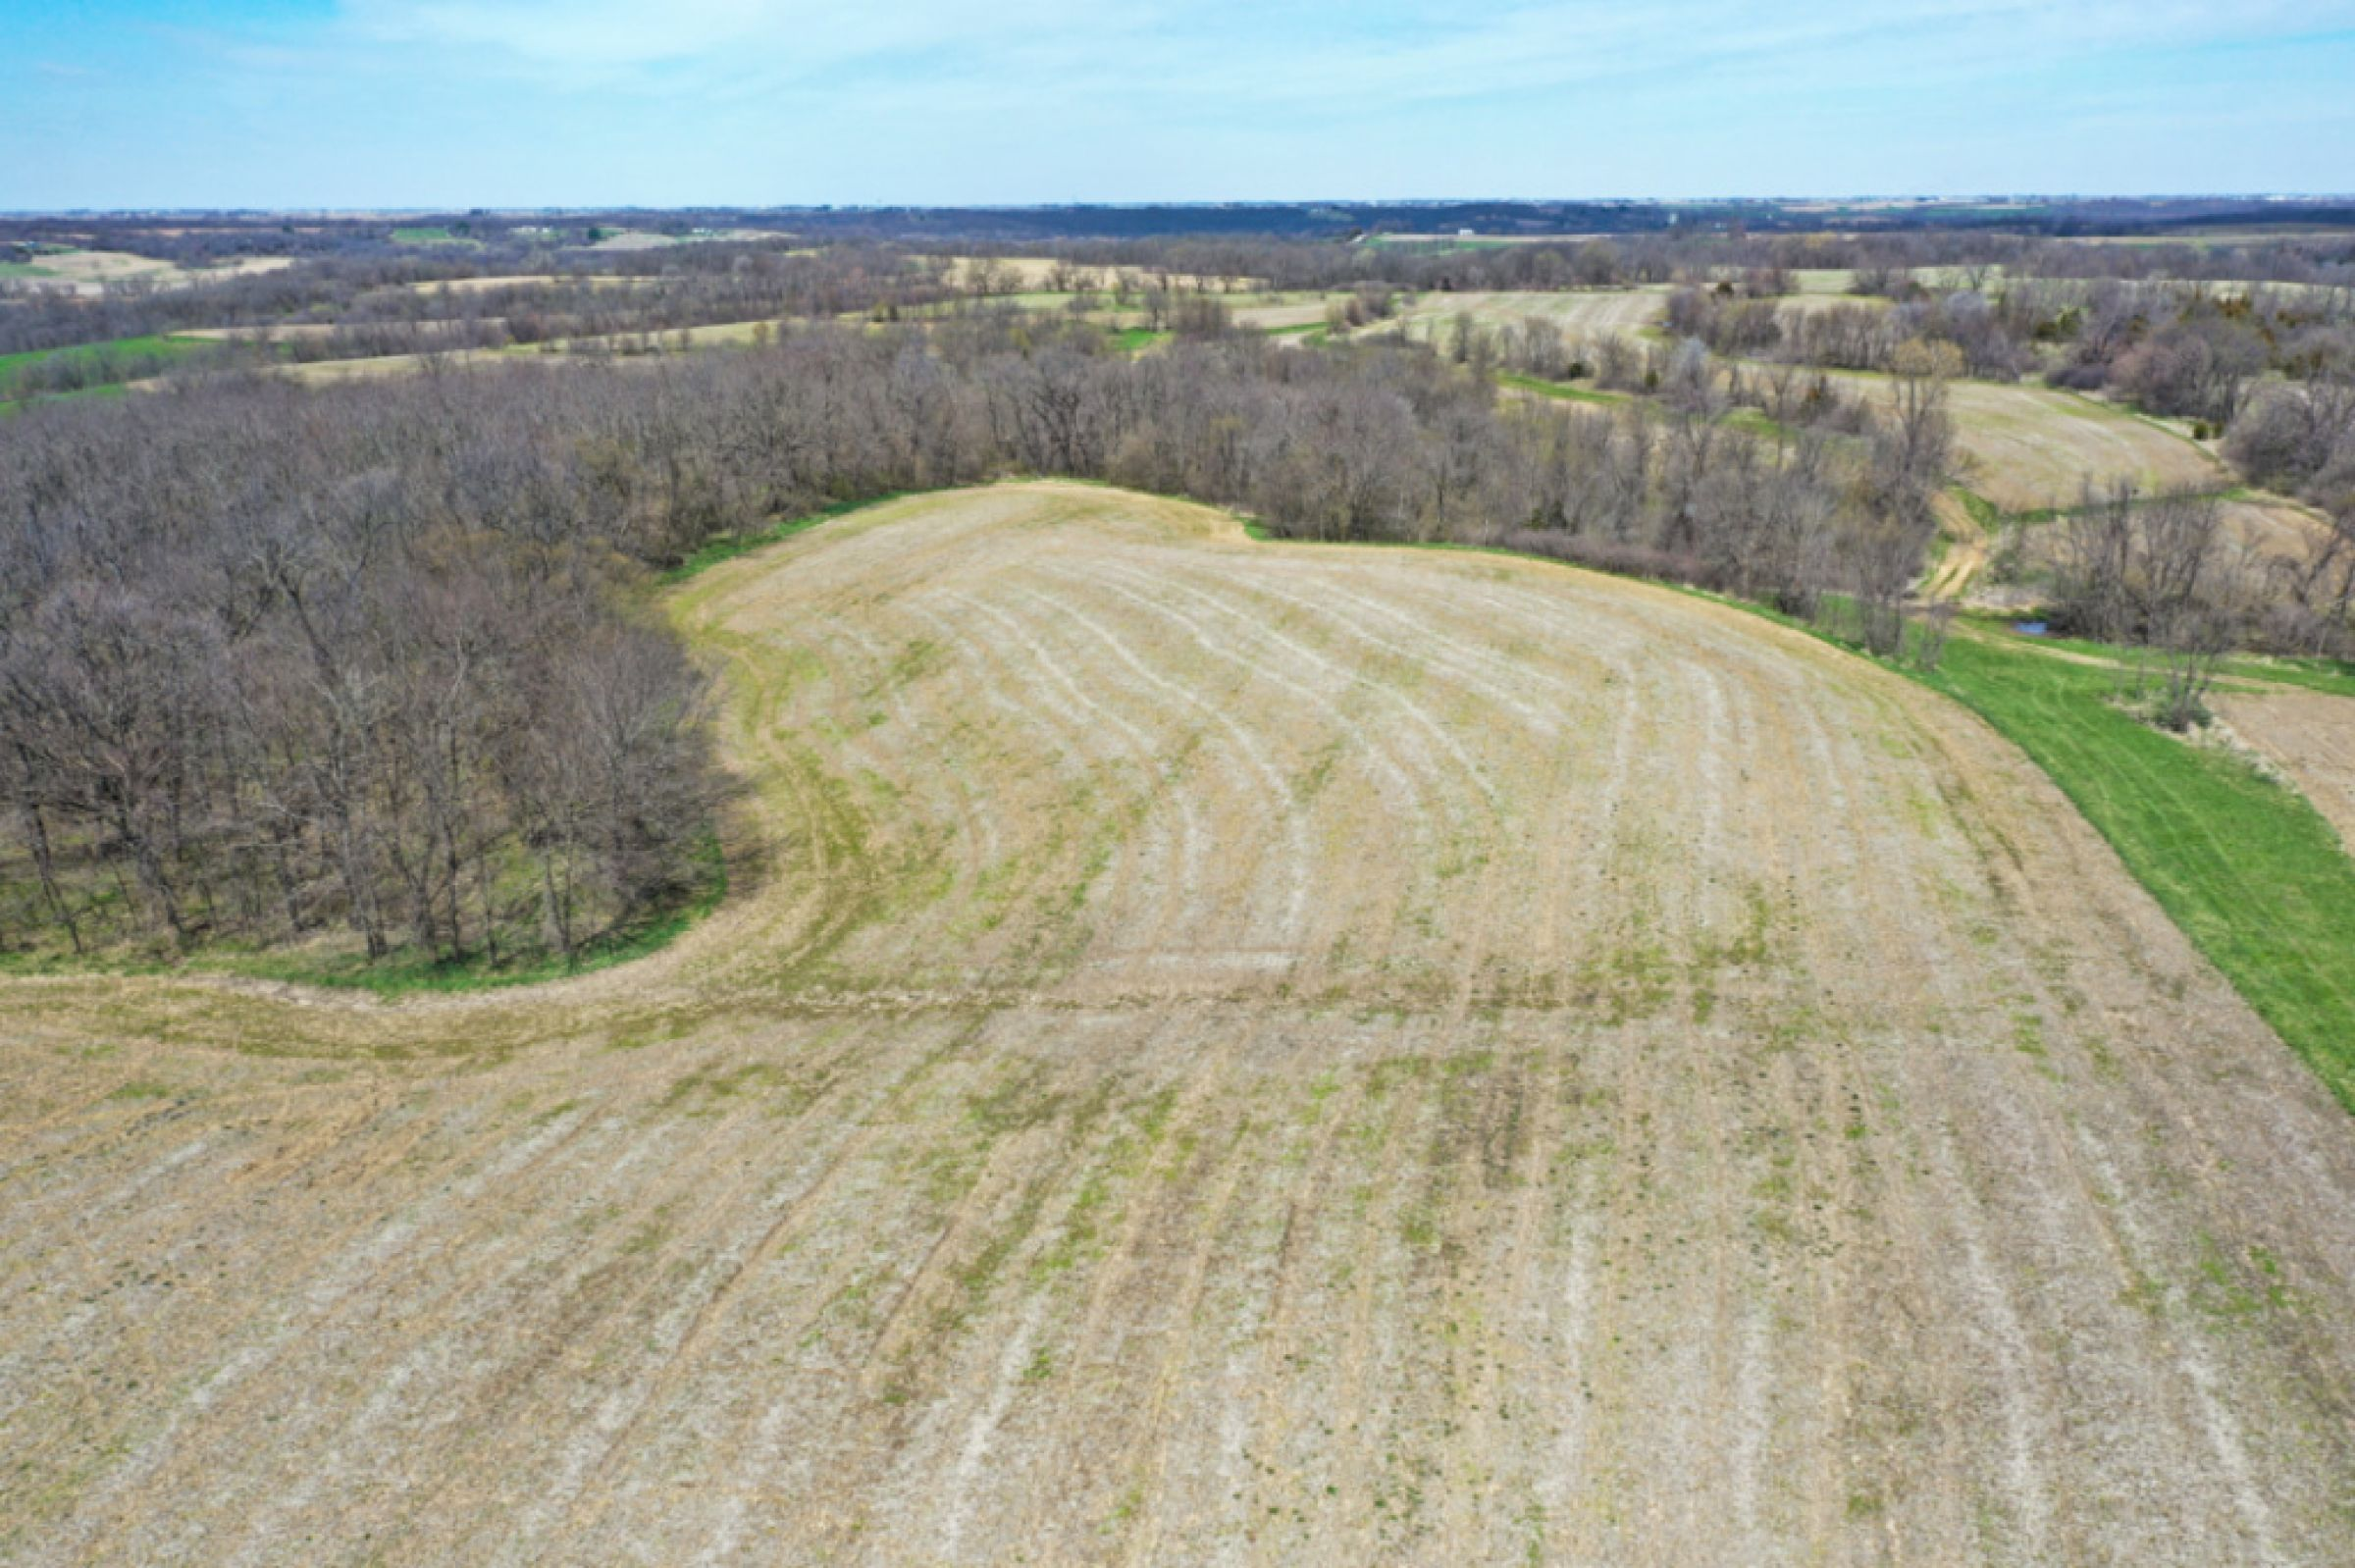 Peoples Company Land for Sale - #14955-rutledge-street-melcher-dallas-50163